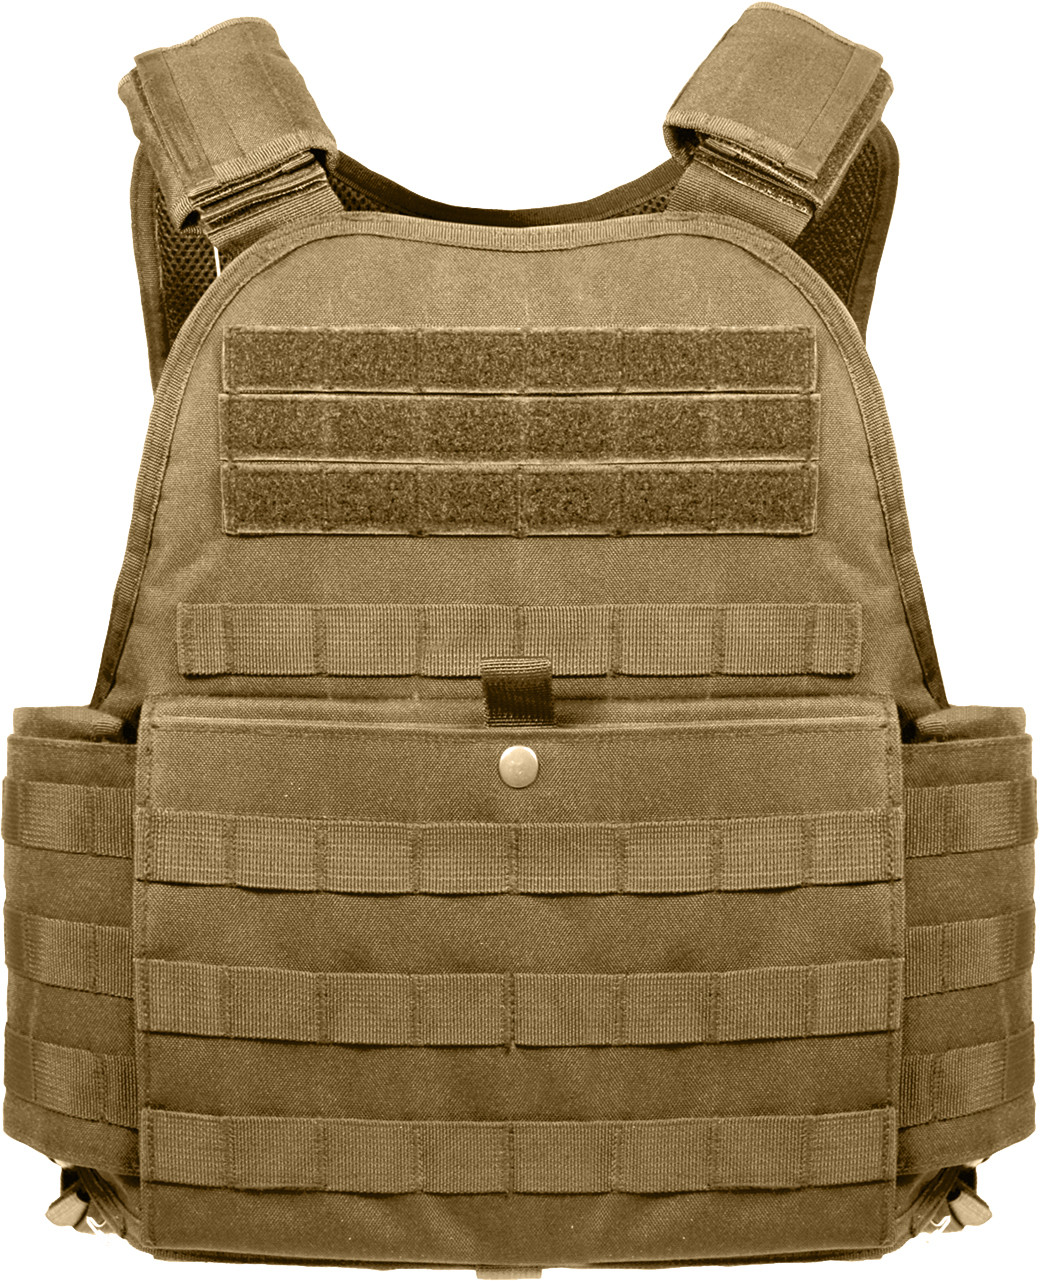 Coyote Brown Tactical MOLLE Plate Carrier Assault Vest 2fe413d4007